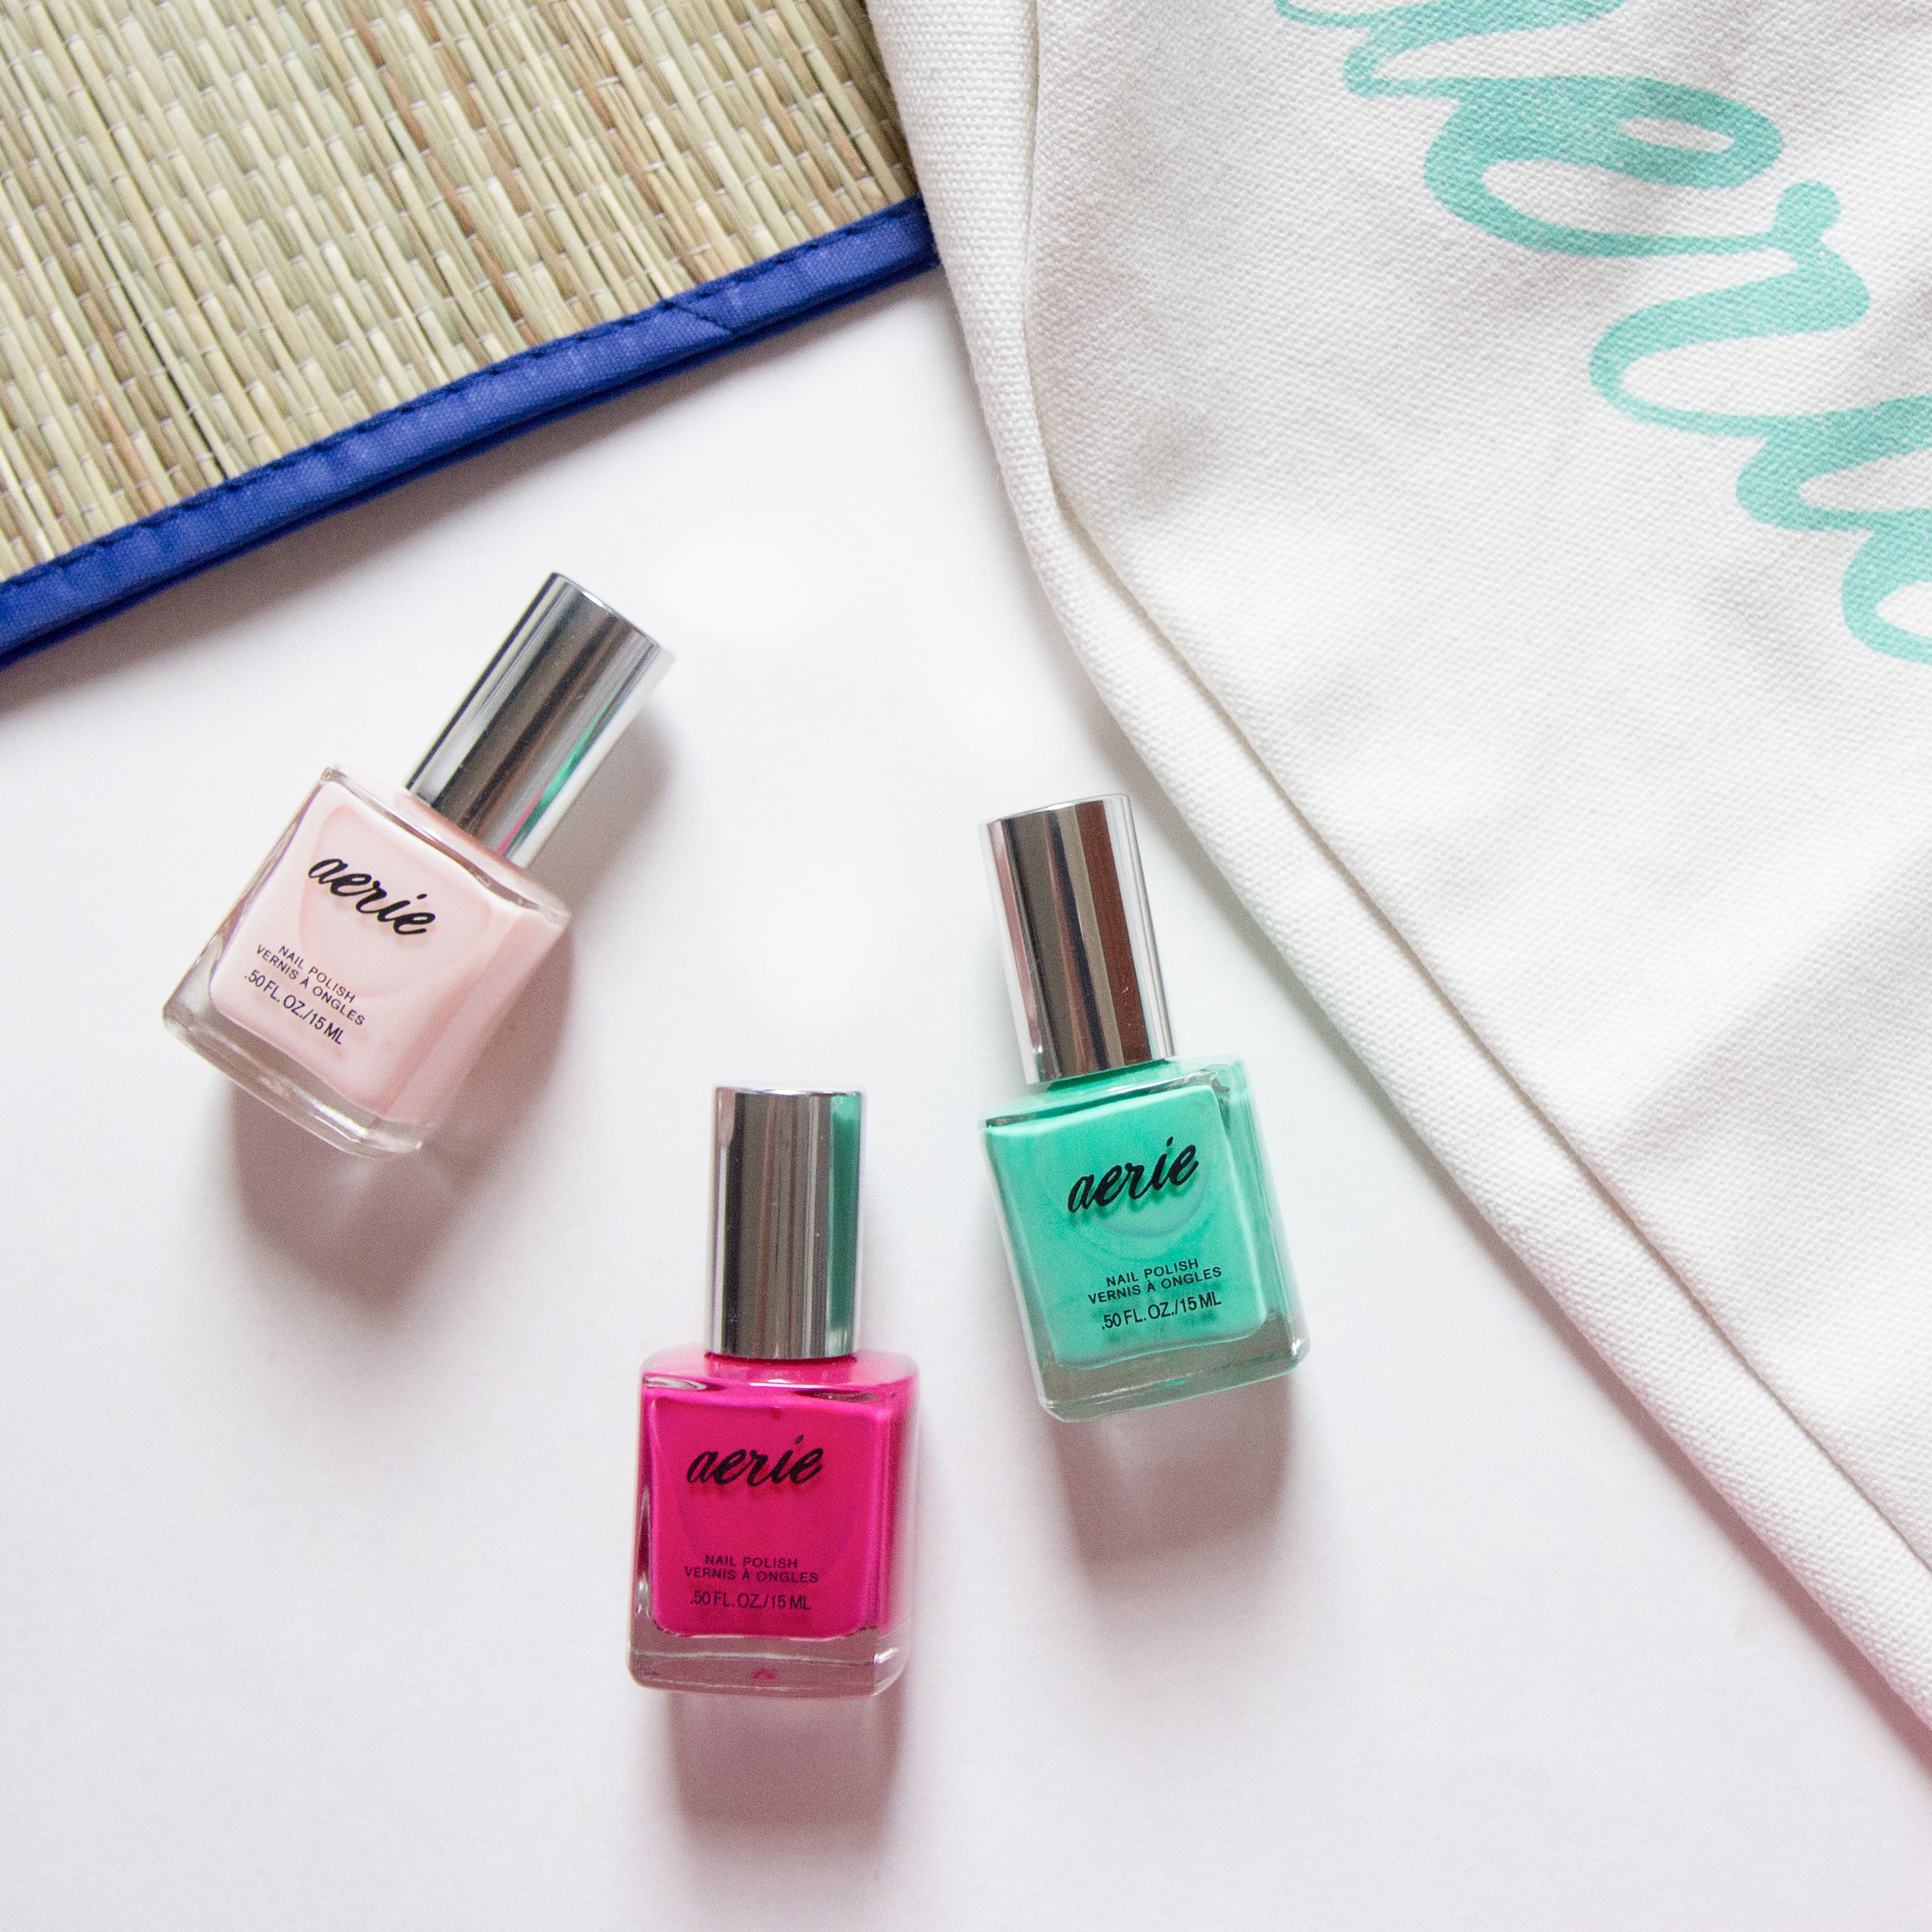 Aerie Beauty For Real Pretty Pink, Sea Foam Fun, Pink Lace Nail Polish Swatches Review